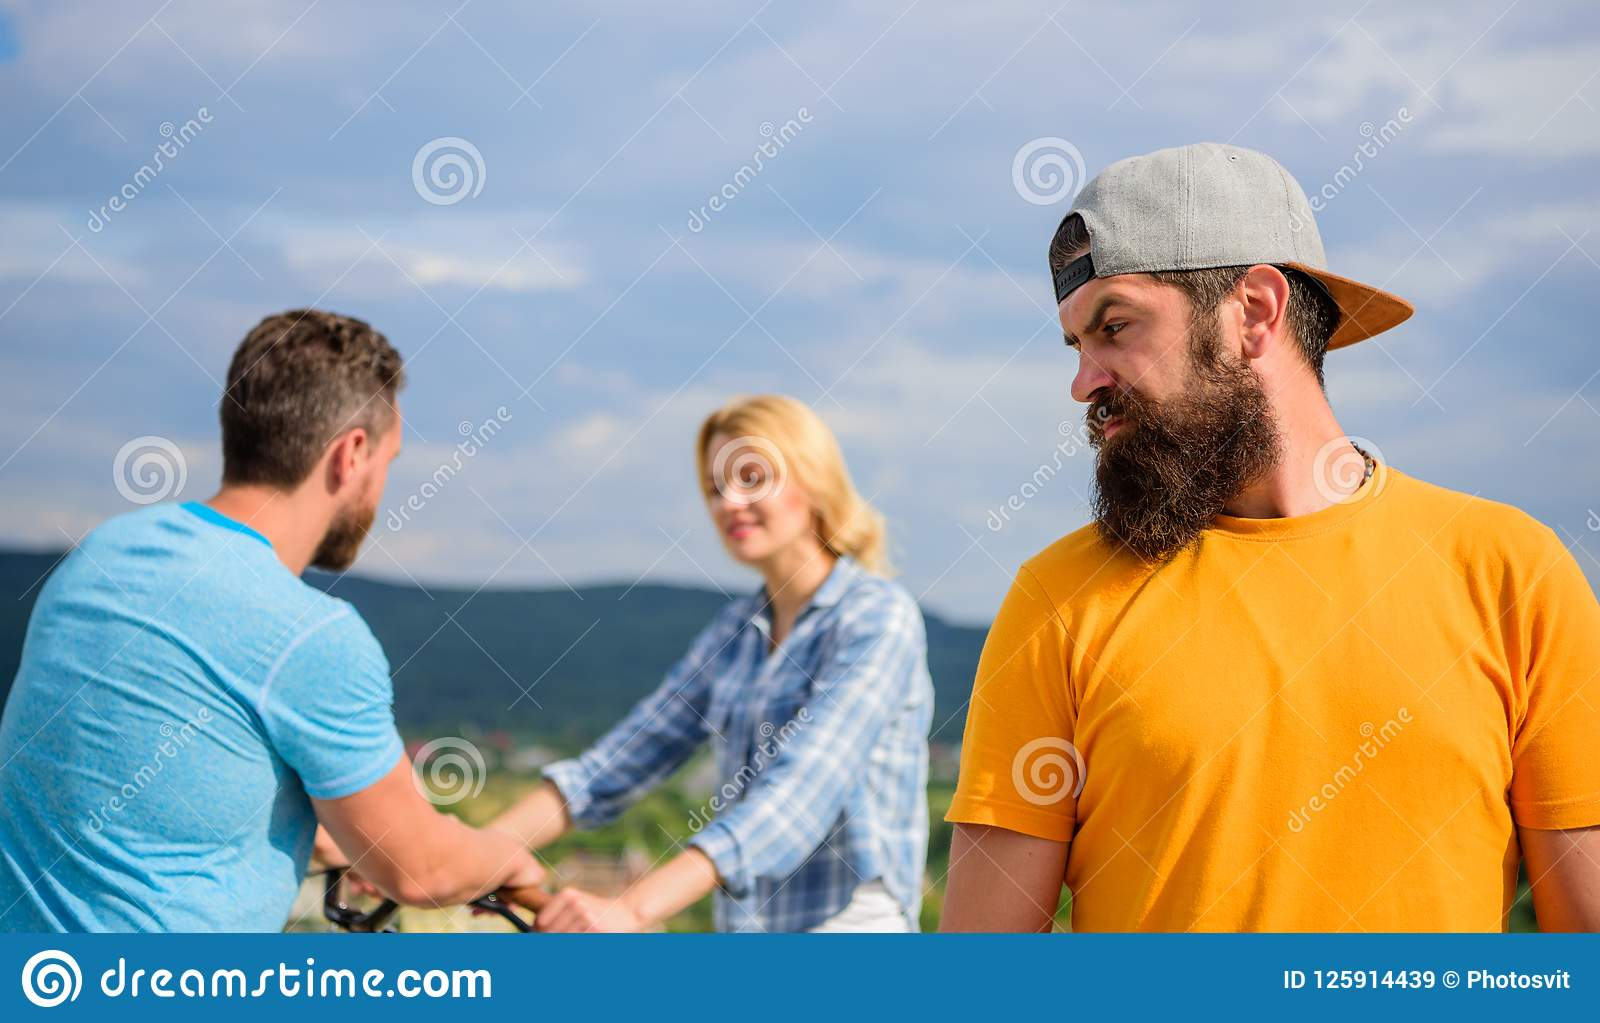 Man Hipster Feels Lonely Couple Dating Behind Him  No